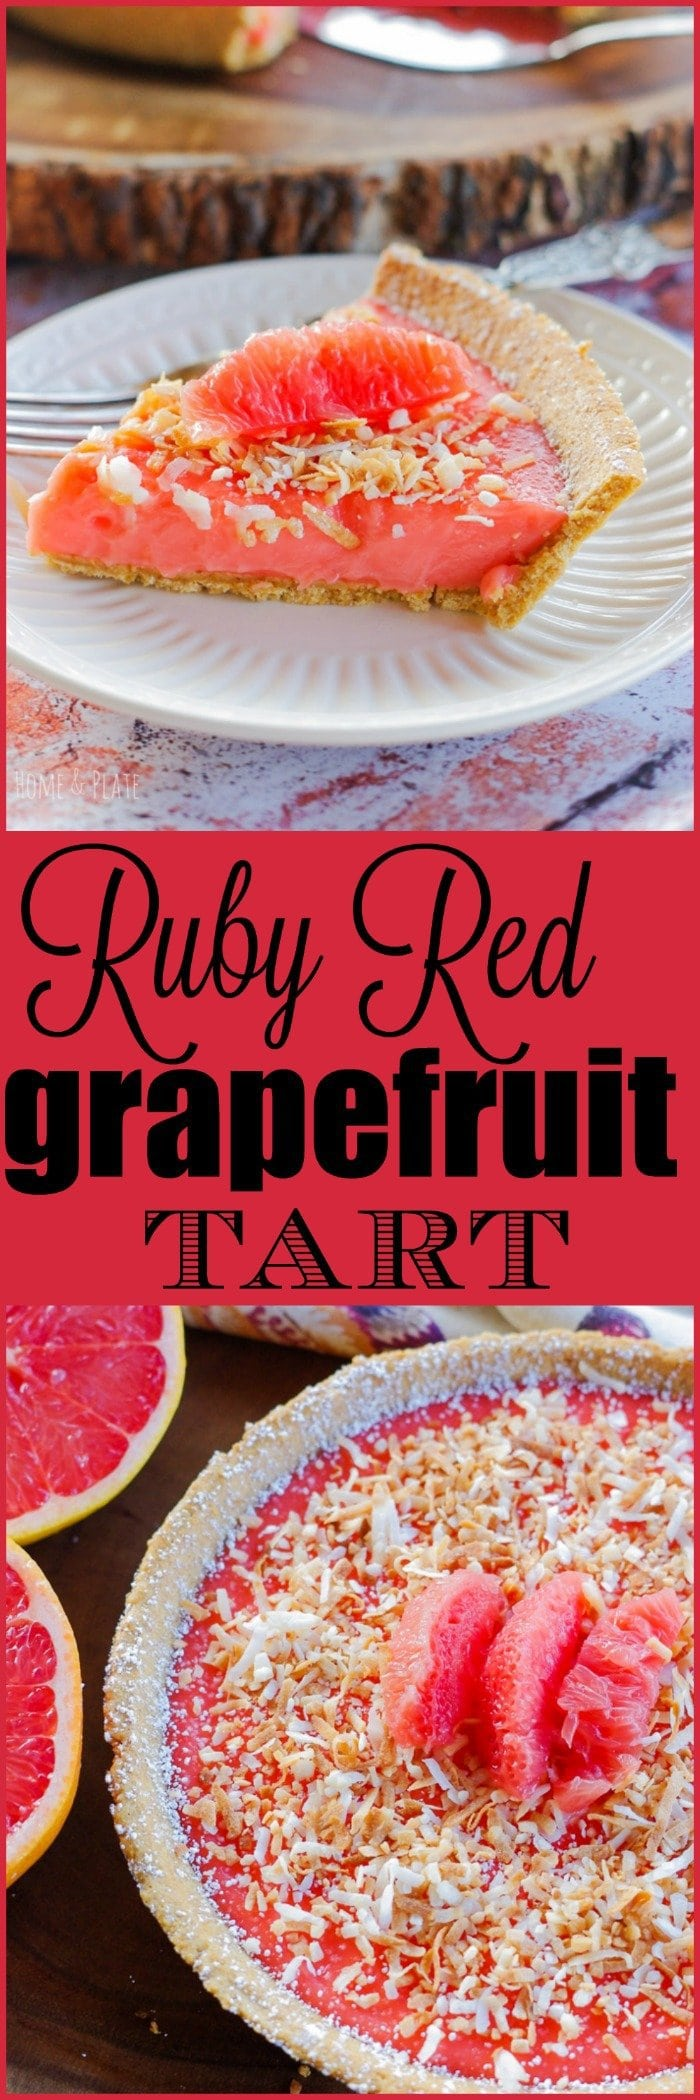 Ruby Red Grapefruit Tart | www.homeandplate.com | The floral notes of sweet grapefruit curd pair perfectly with the graham cracker crust.